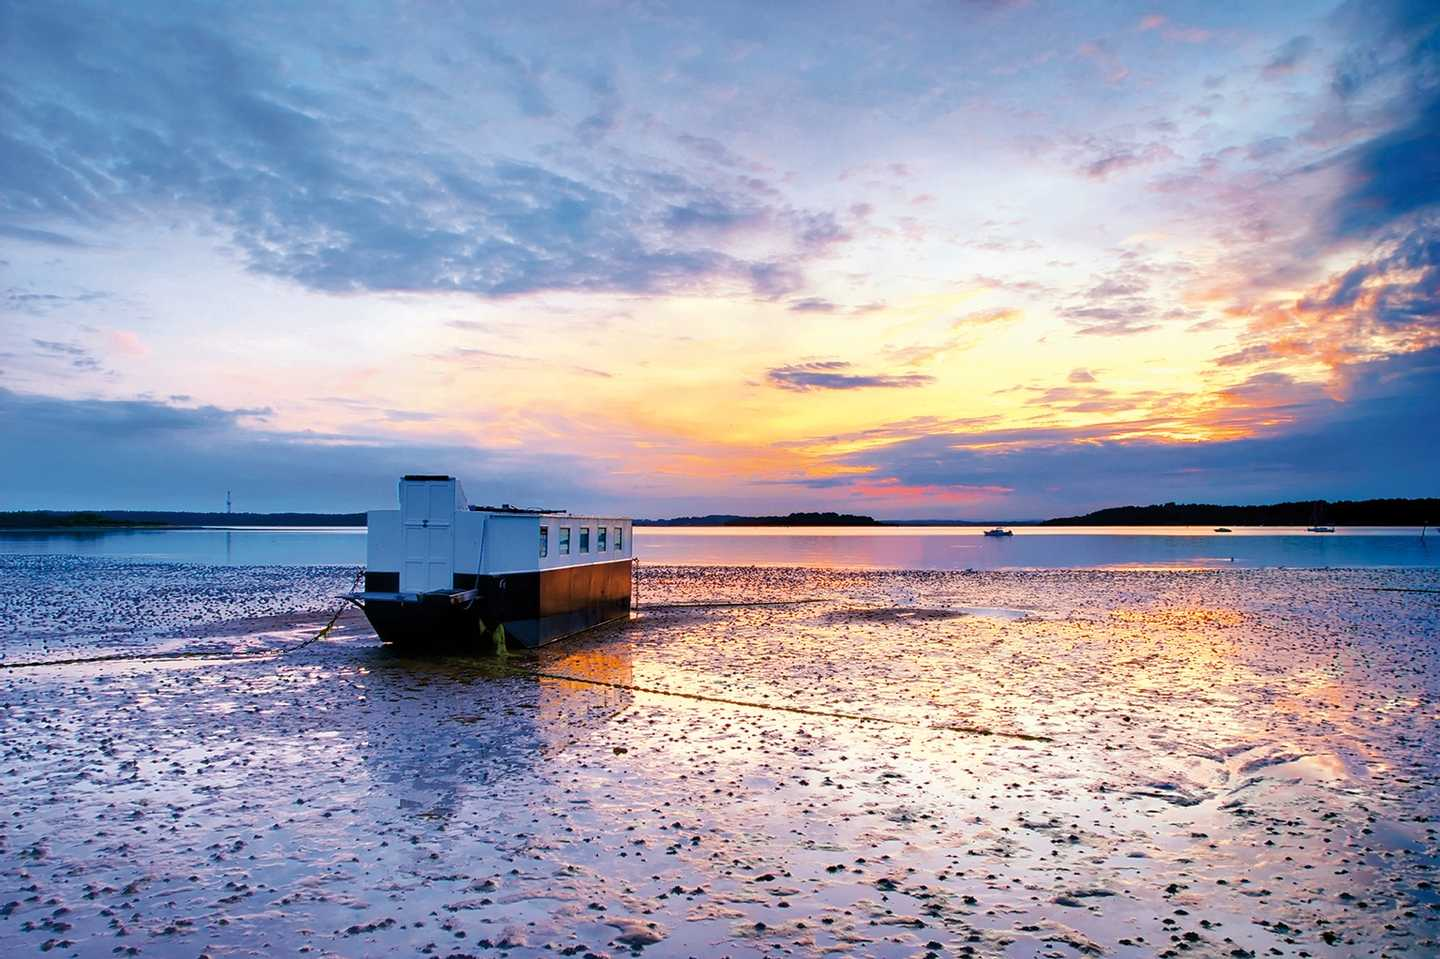 Sunset at Poole Harbour & Quay